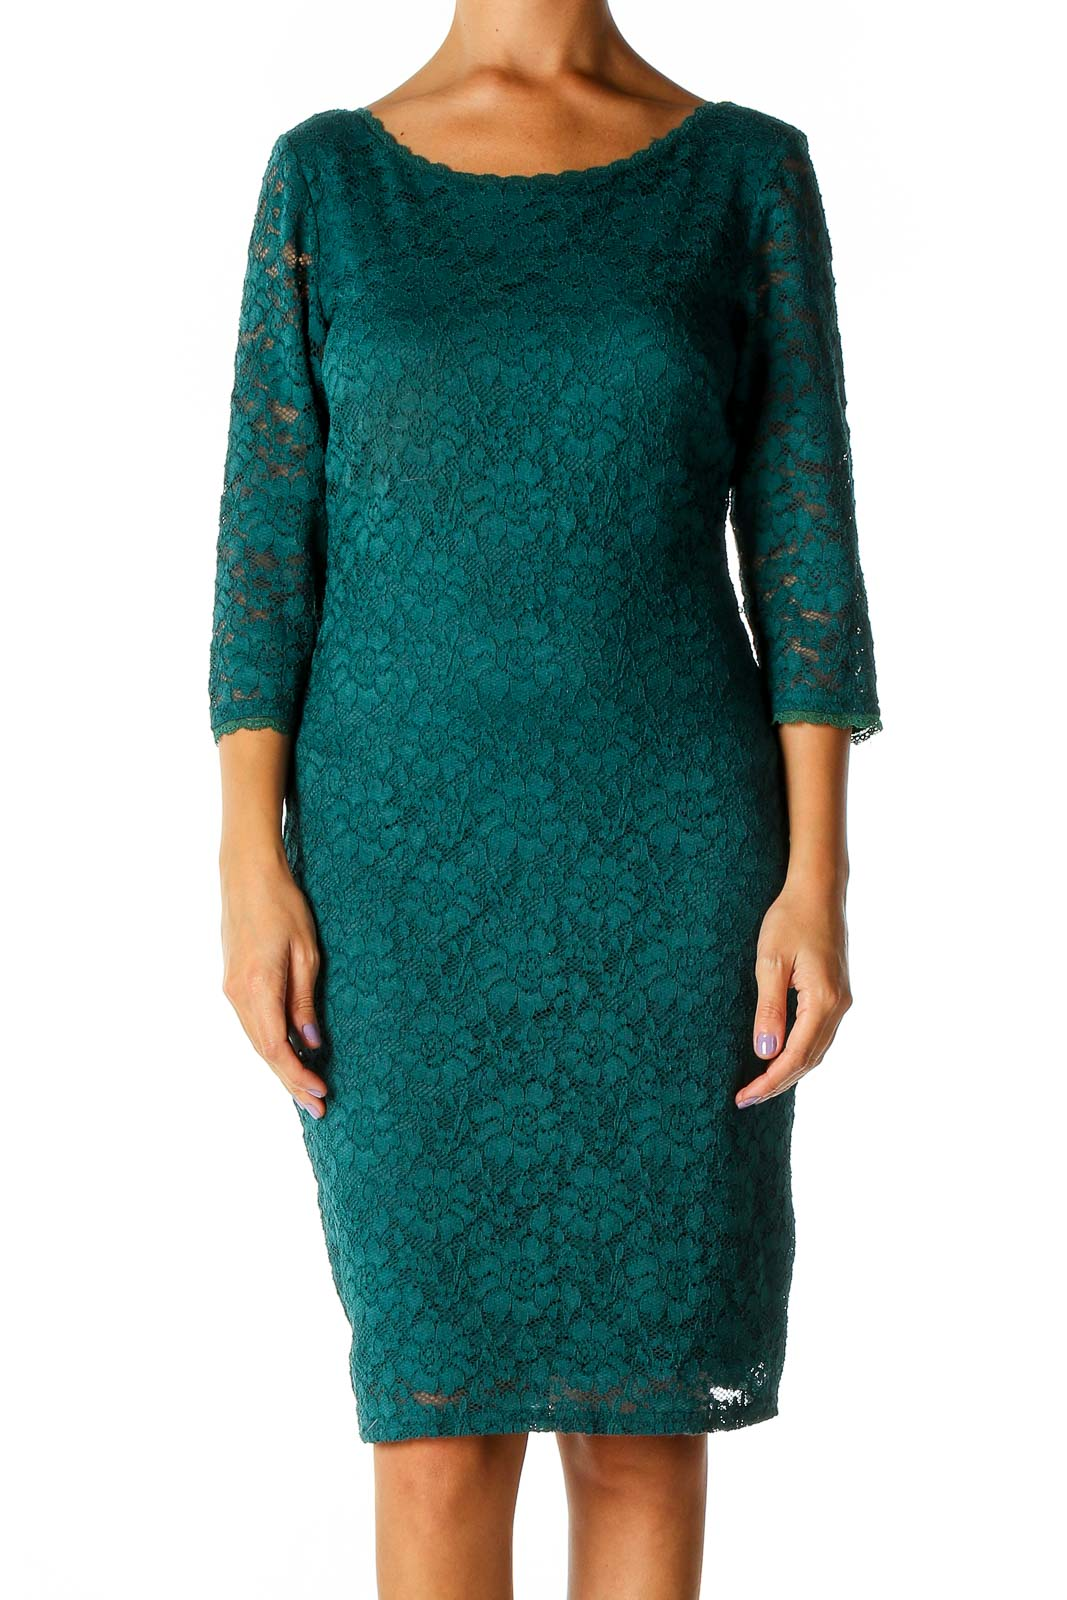 Green Lace Classic Shift Dress Front